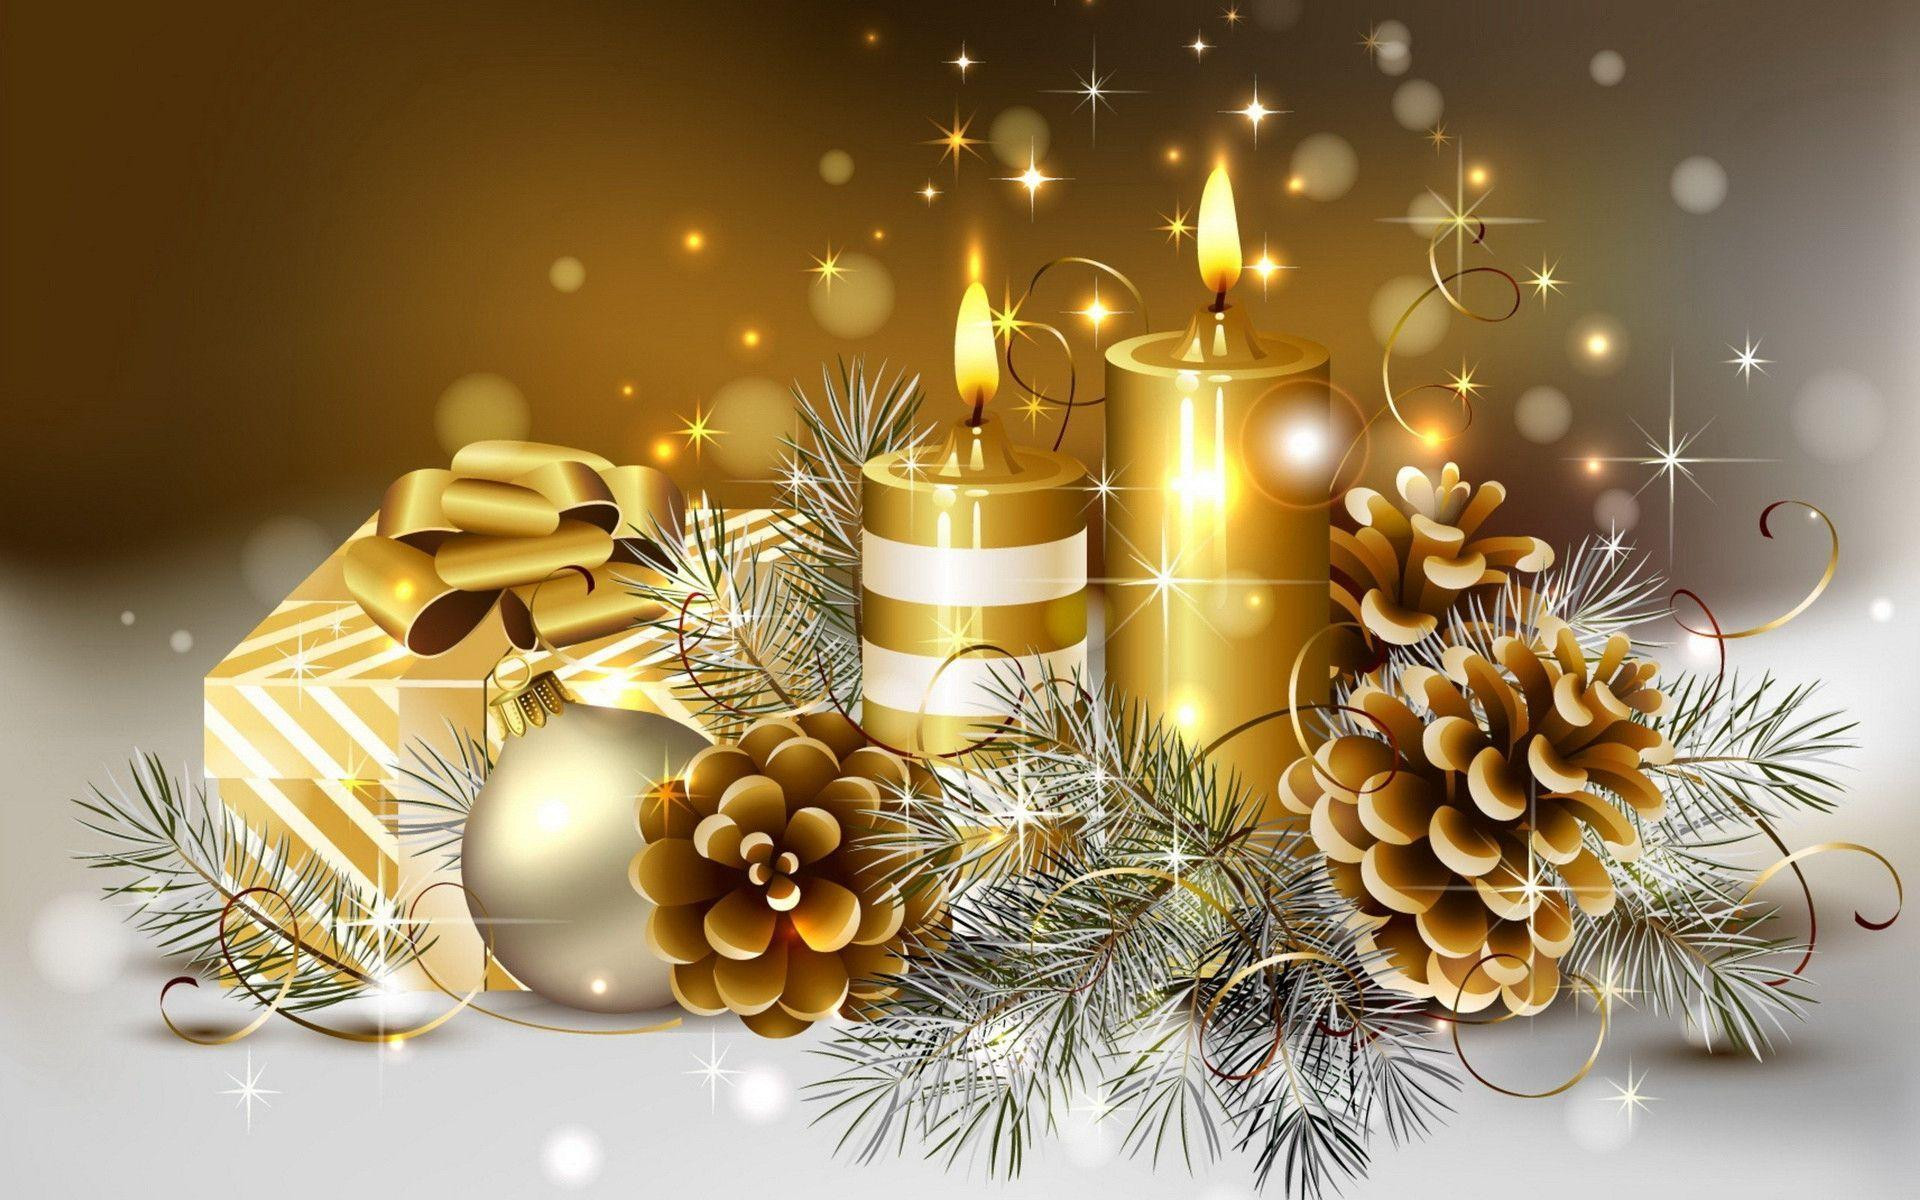 free christmas wallpaper backgrounds 8